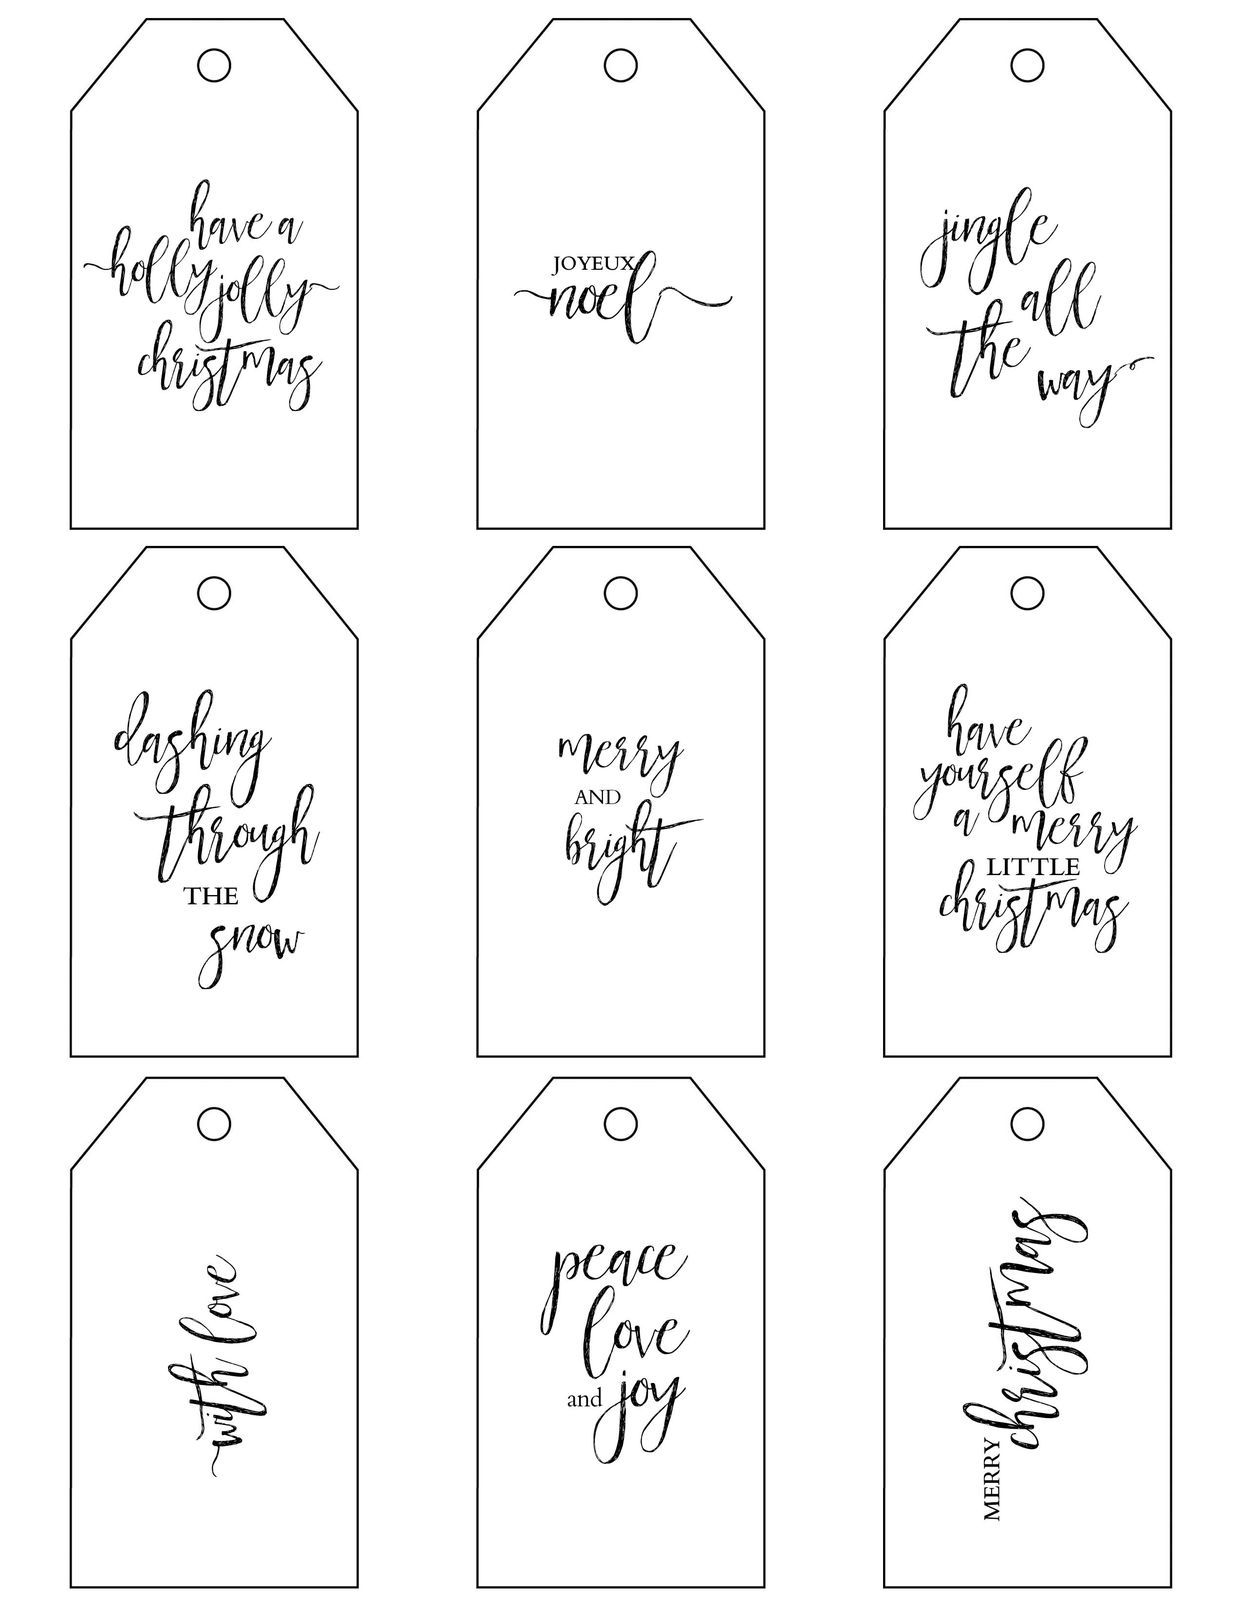 photo regarding Free Christmas Tag Printable known as No cost Xmas Reward Tag Printables Vacations Xmas